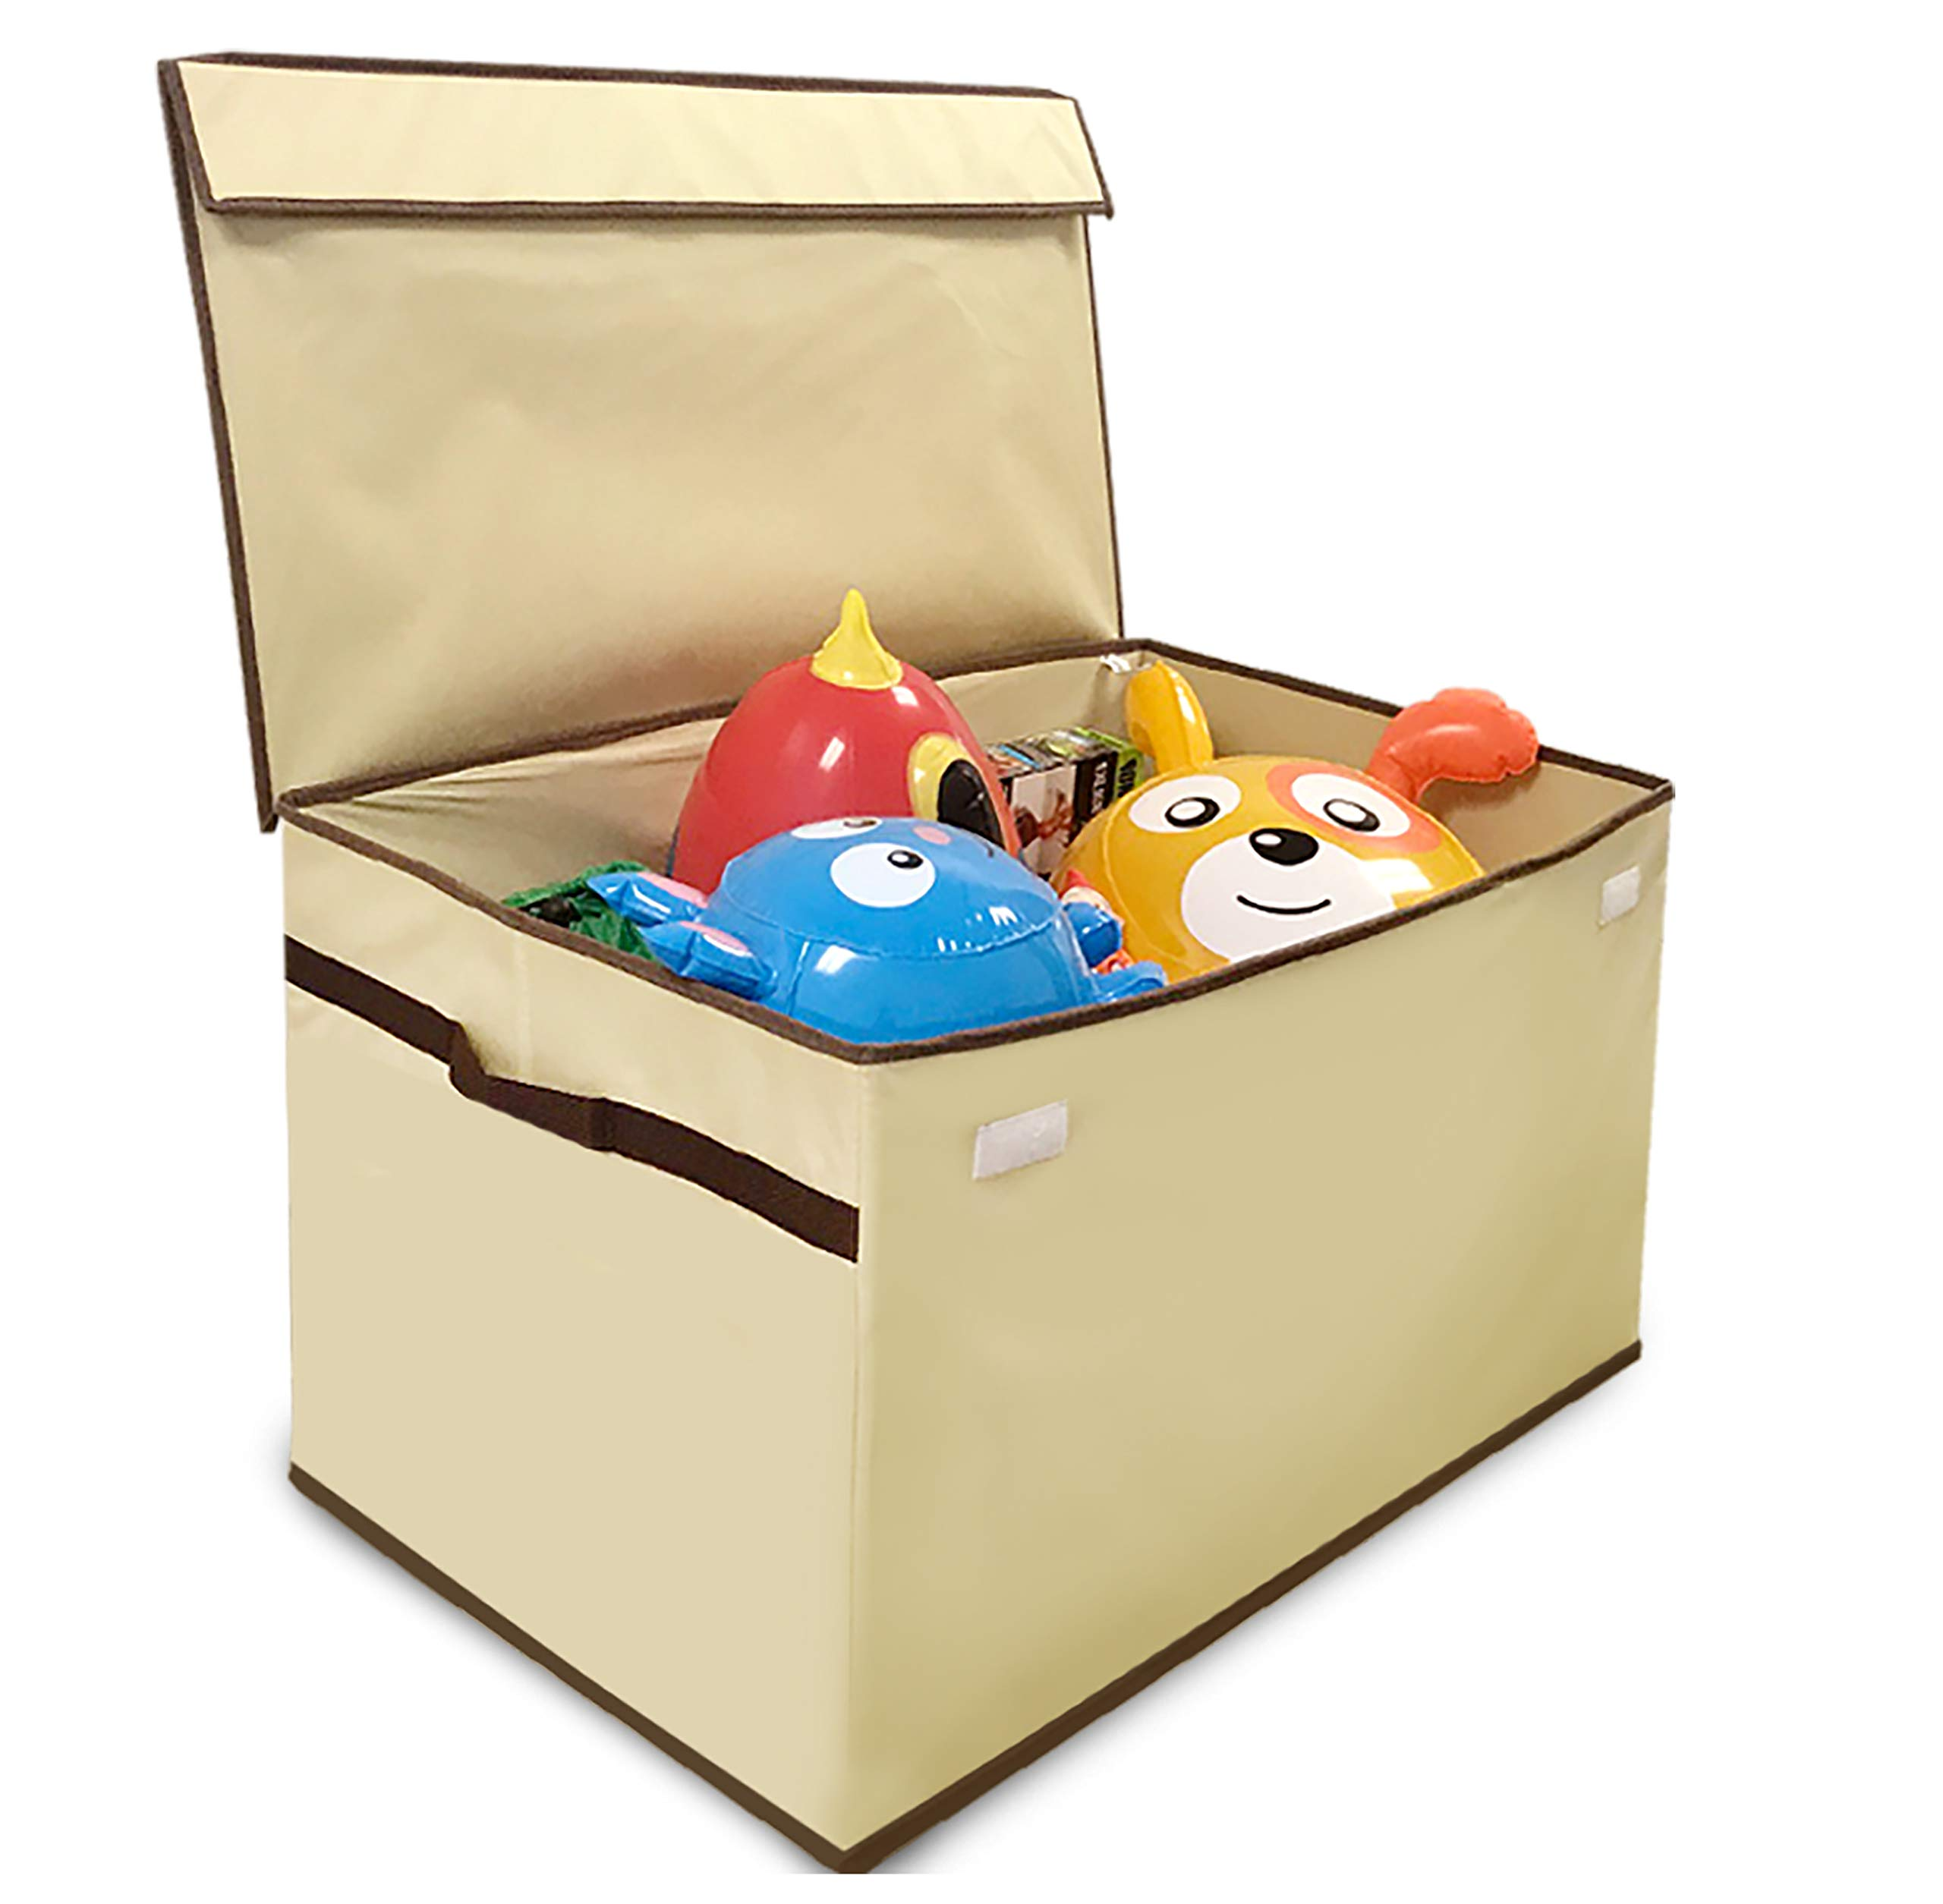 EasyGoProducts Giant Toy Box Folding Toy Trunk Organizer, Toy Chest Collapsible Storage Bin, Great for Nursery or Any Room with Toy Box Lid and Side Handles - 30'' Wide x 16'' deep x 15'' Tall by EasyGoProducts